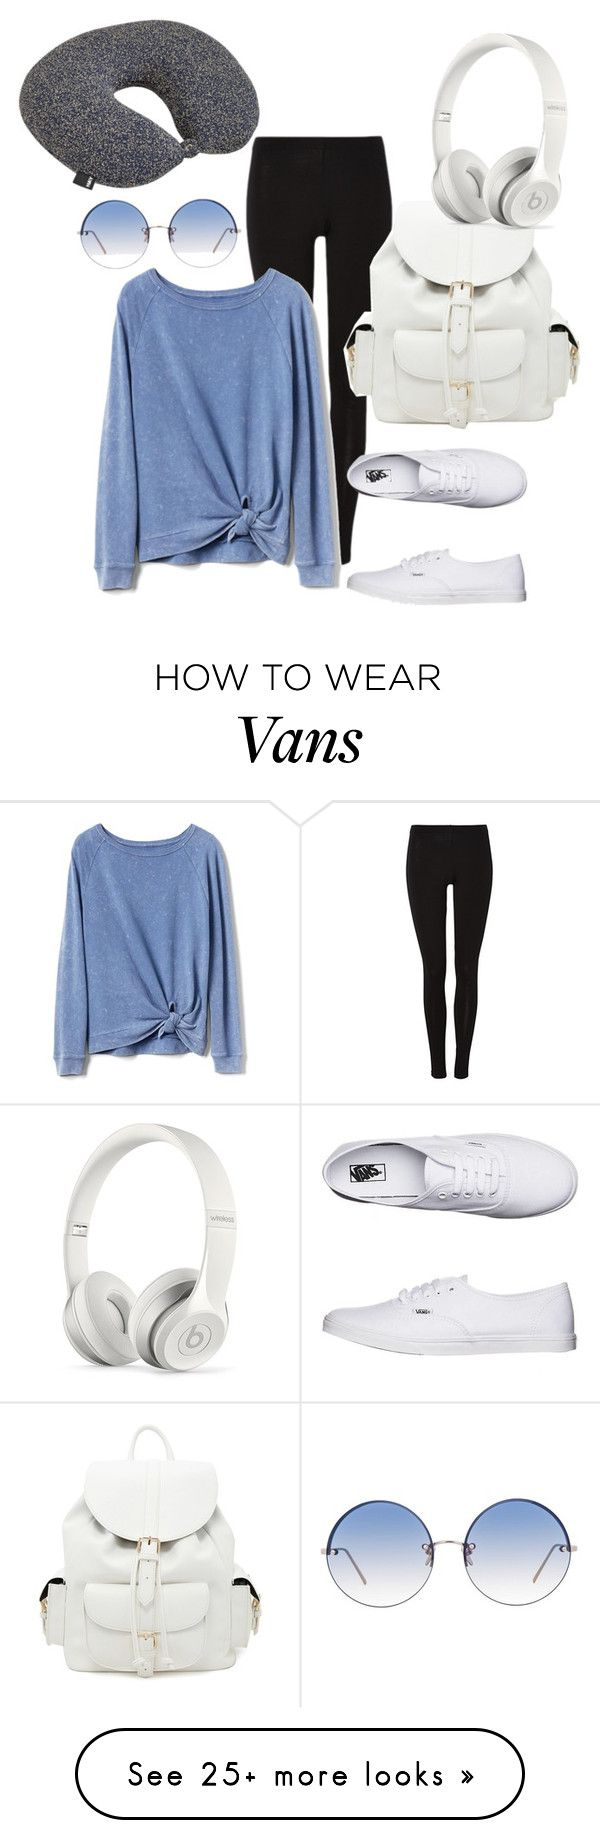 """Road Trip!!"" by synia-gant on Polyvore featuring Gap, HAY, Vans, Linda Farrow, Forever 21 and Beats by Dr. Dre"